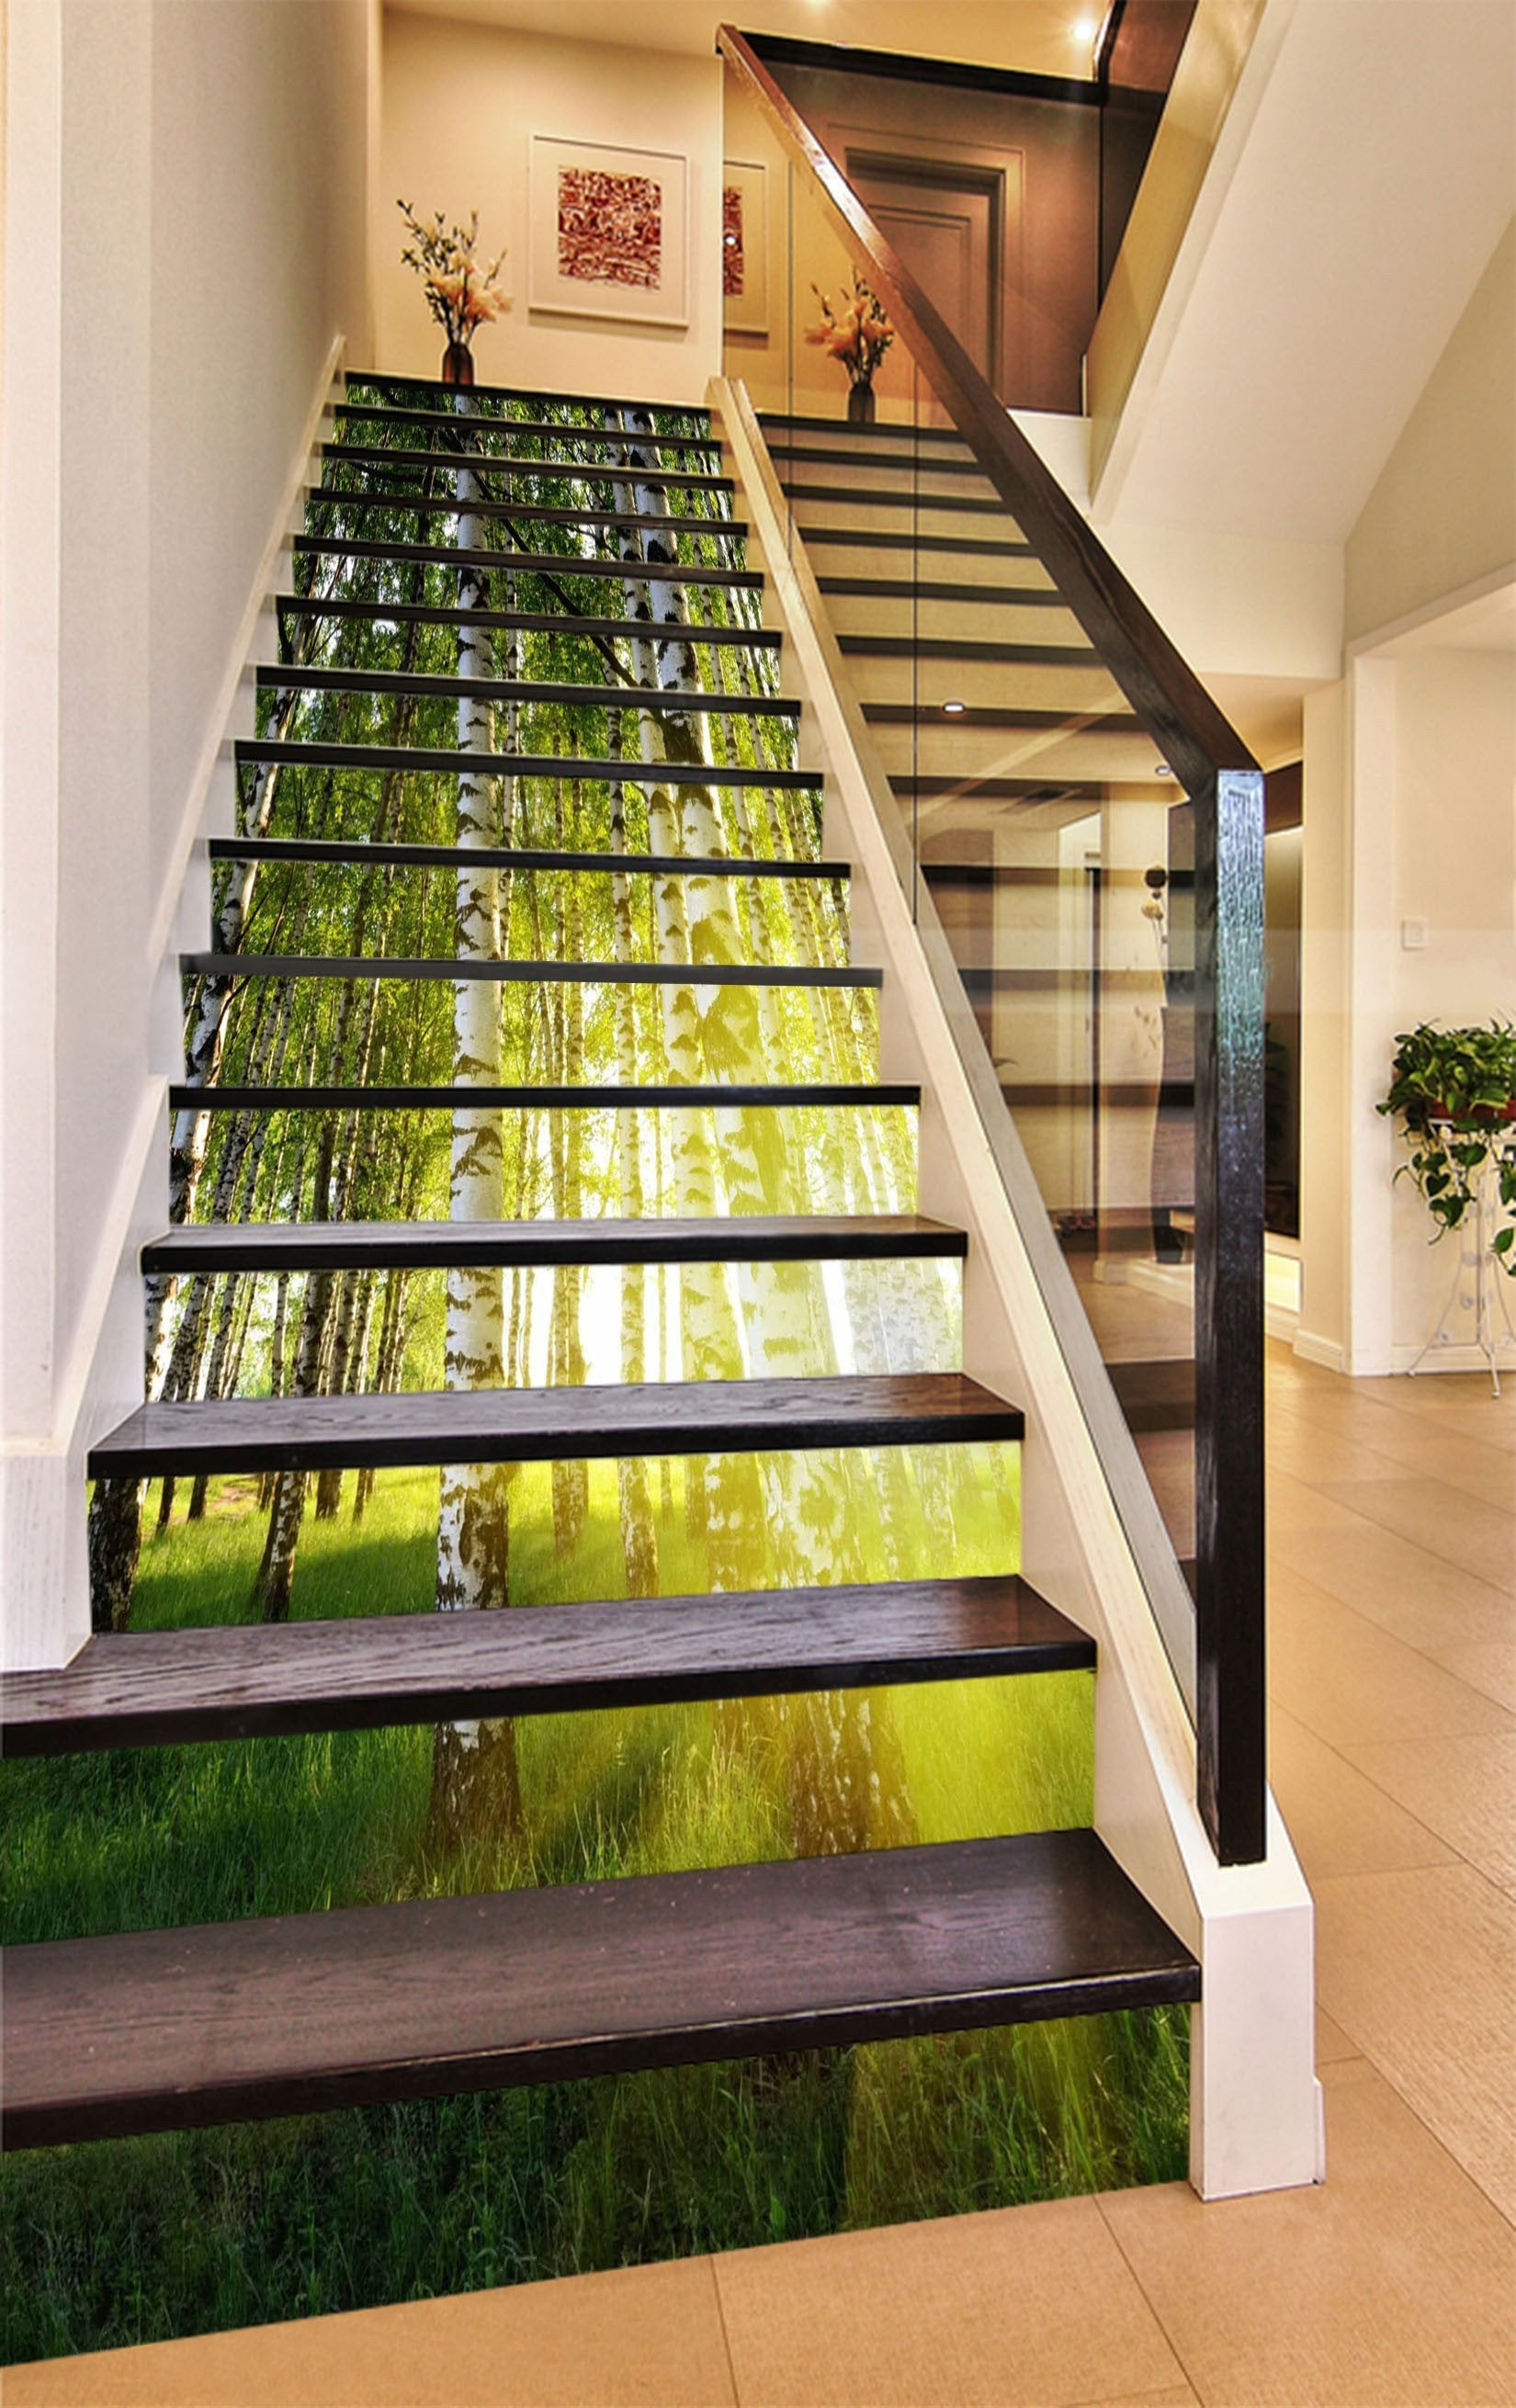 3D Grassland Trees Sunshine 1467 Stair Risers Wallpaper AJ Wallpaper